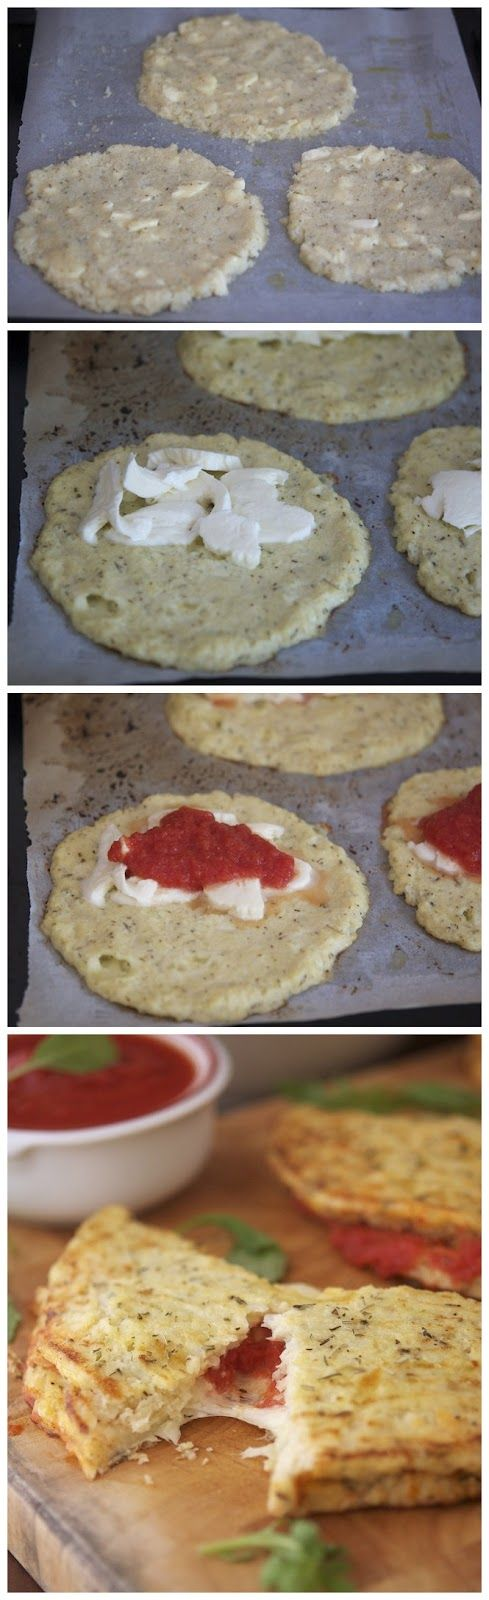 Cauliflower Crust Calzone. I love cauliflower! Will substitute with vegan mozzarella & a flax egg.